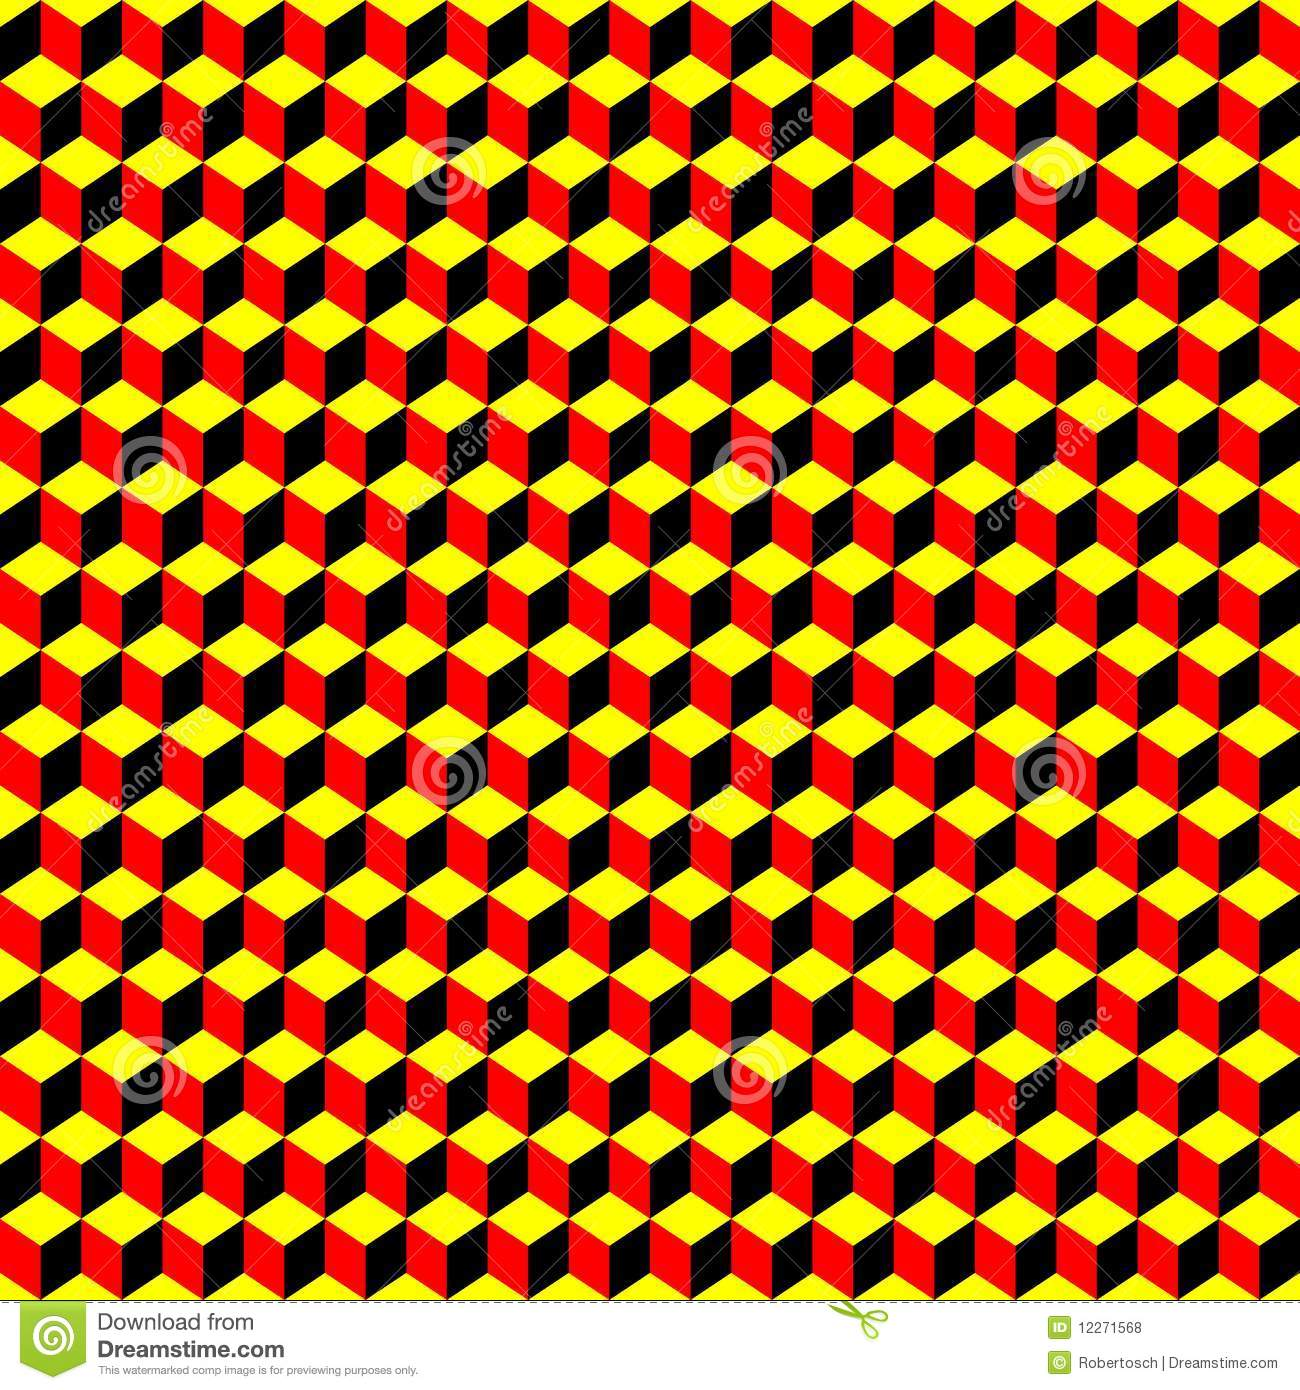 Modern kitchen wallpaper texture - Psychedelic Pattern Black Red Yellow Royalty Free Stock